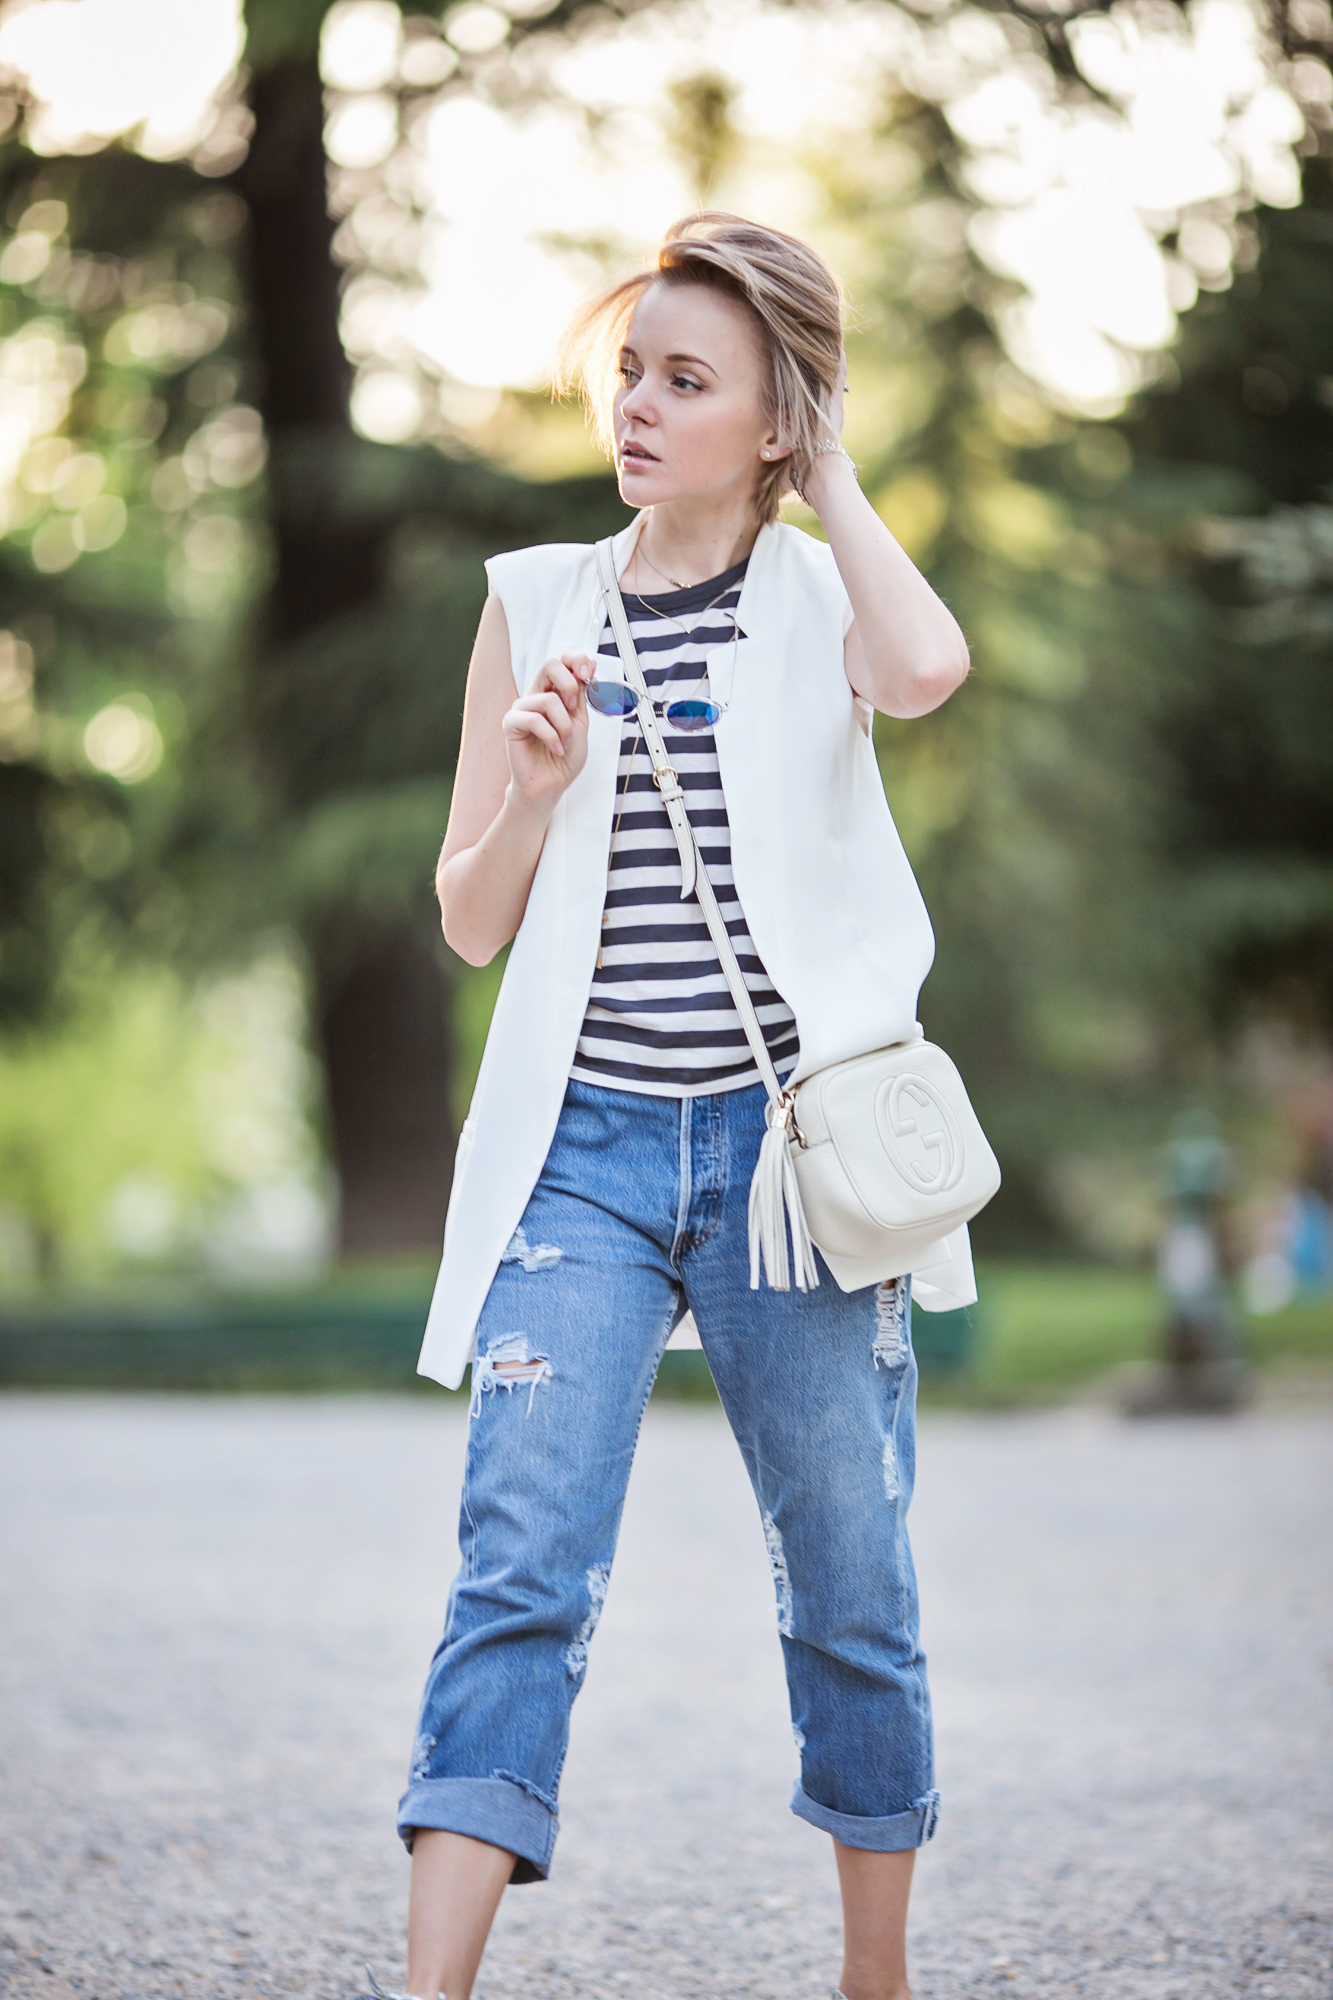 darya kamalova from thecablook com in milan for fuori salone 2014 wearing sleveless white vest jacket with boyfriend ripped jeans and gucci disco boho bag-22 copy